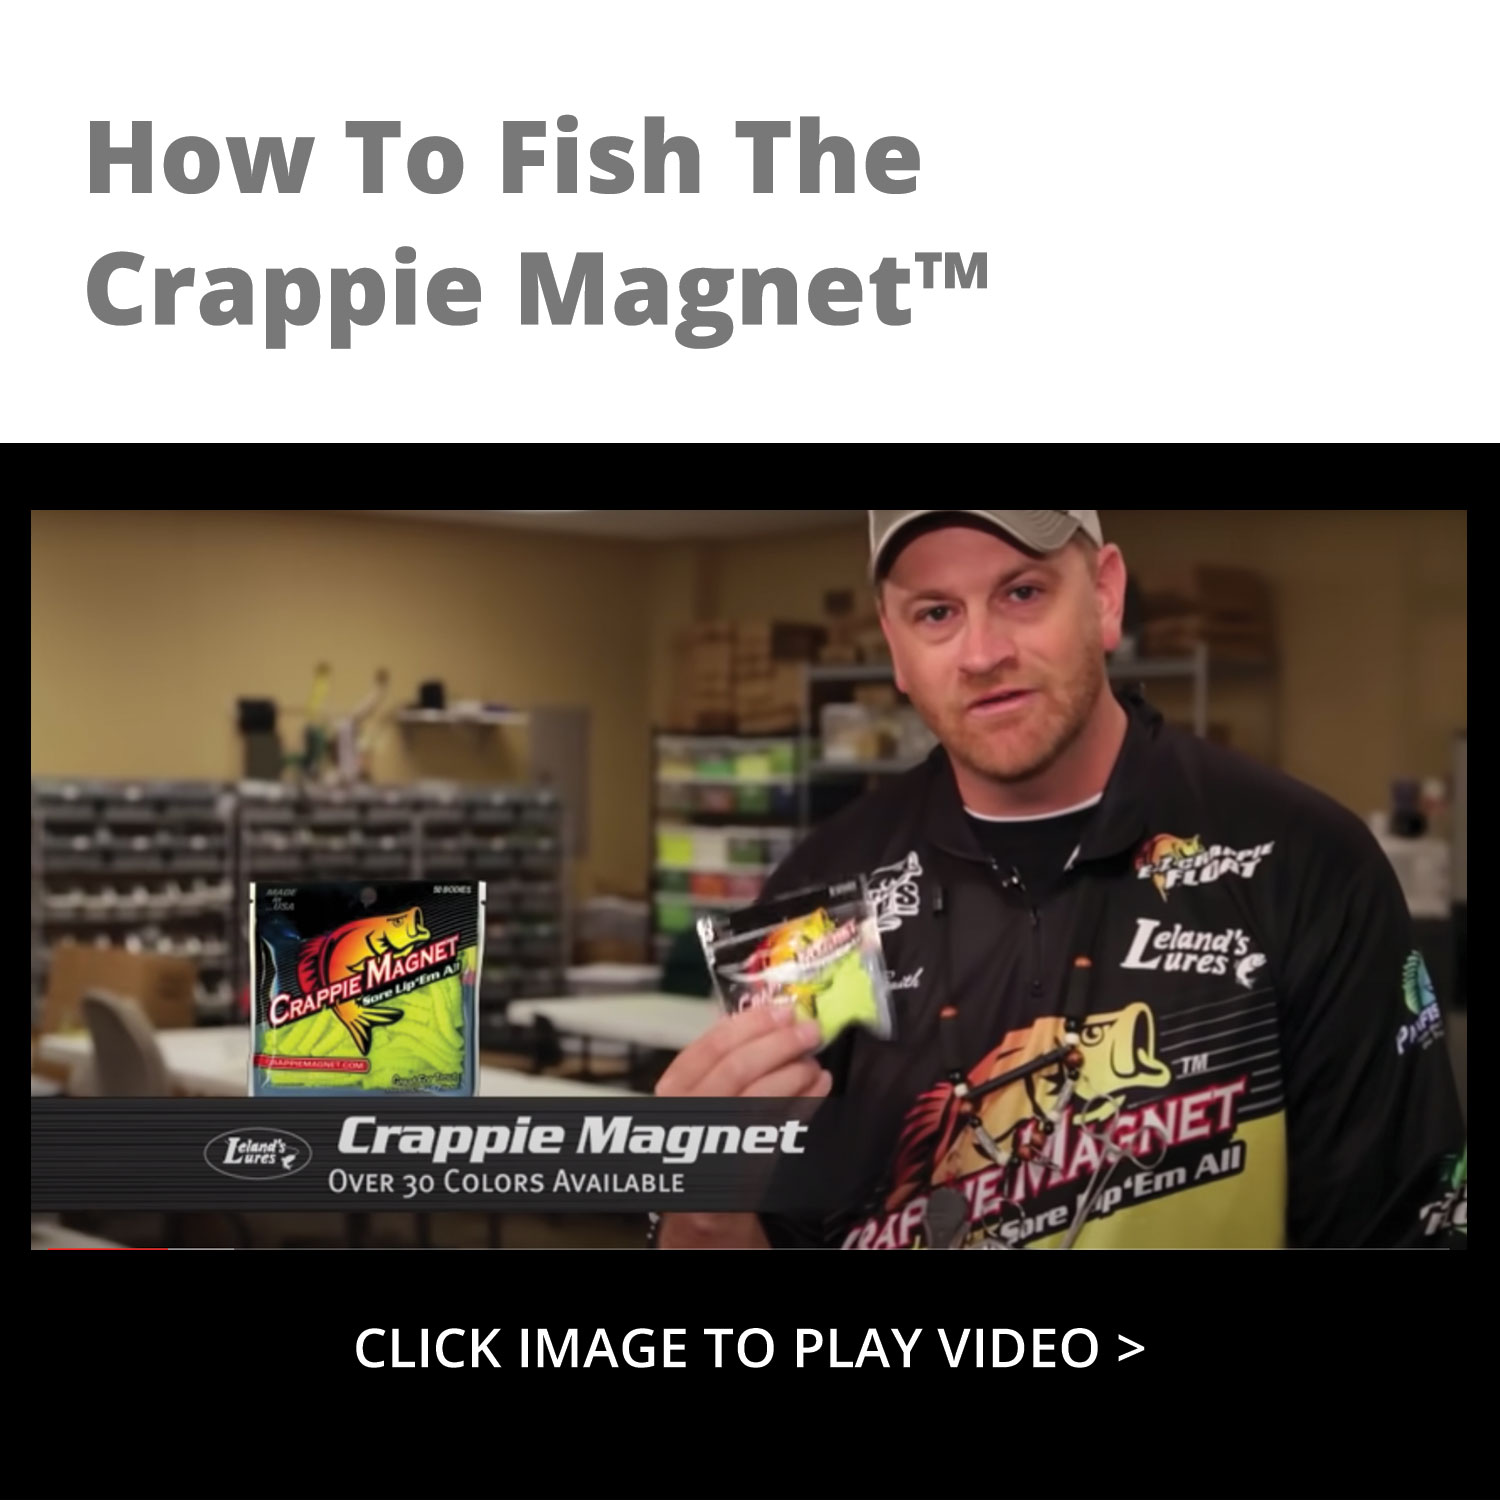 Leland Lures Crappie Magnets 2 packs 30 pc total chicken